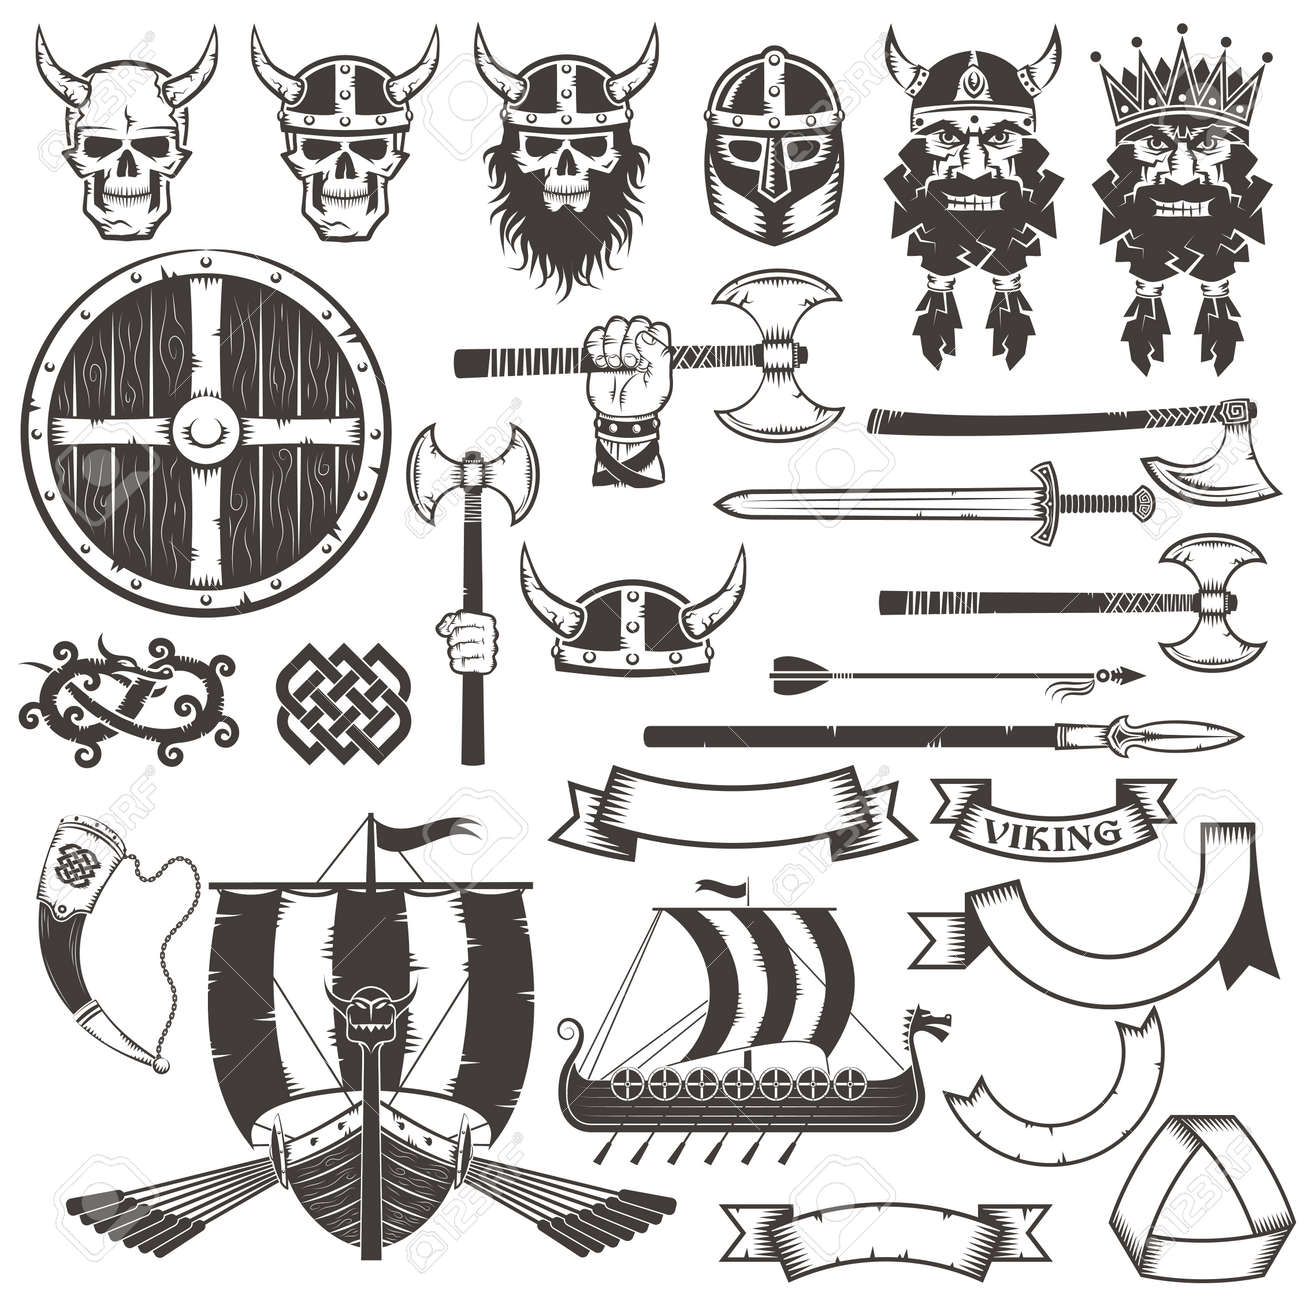 Set Of Viking Weapons And Items Royalty Free Cliparts Vectors And Stock Illustration Image 59766787